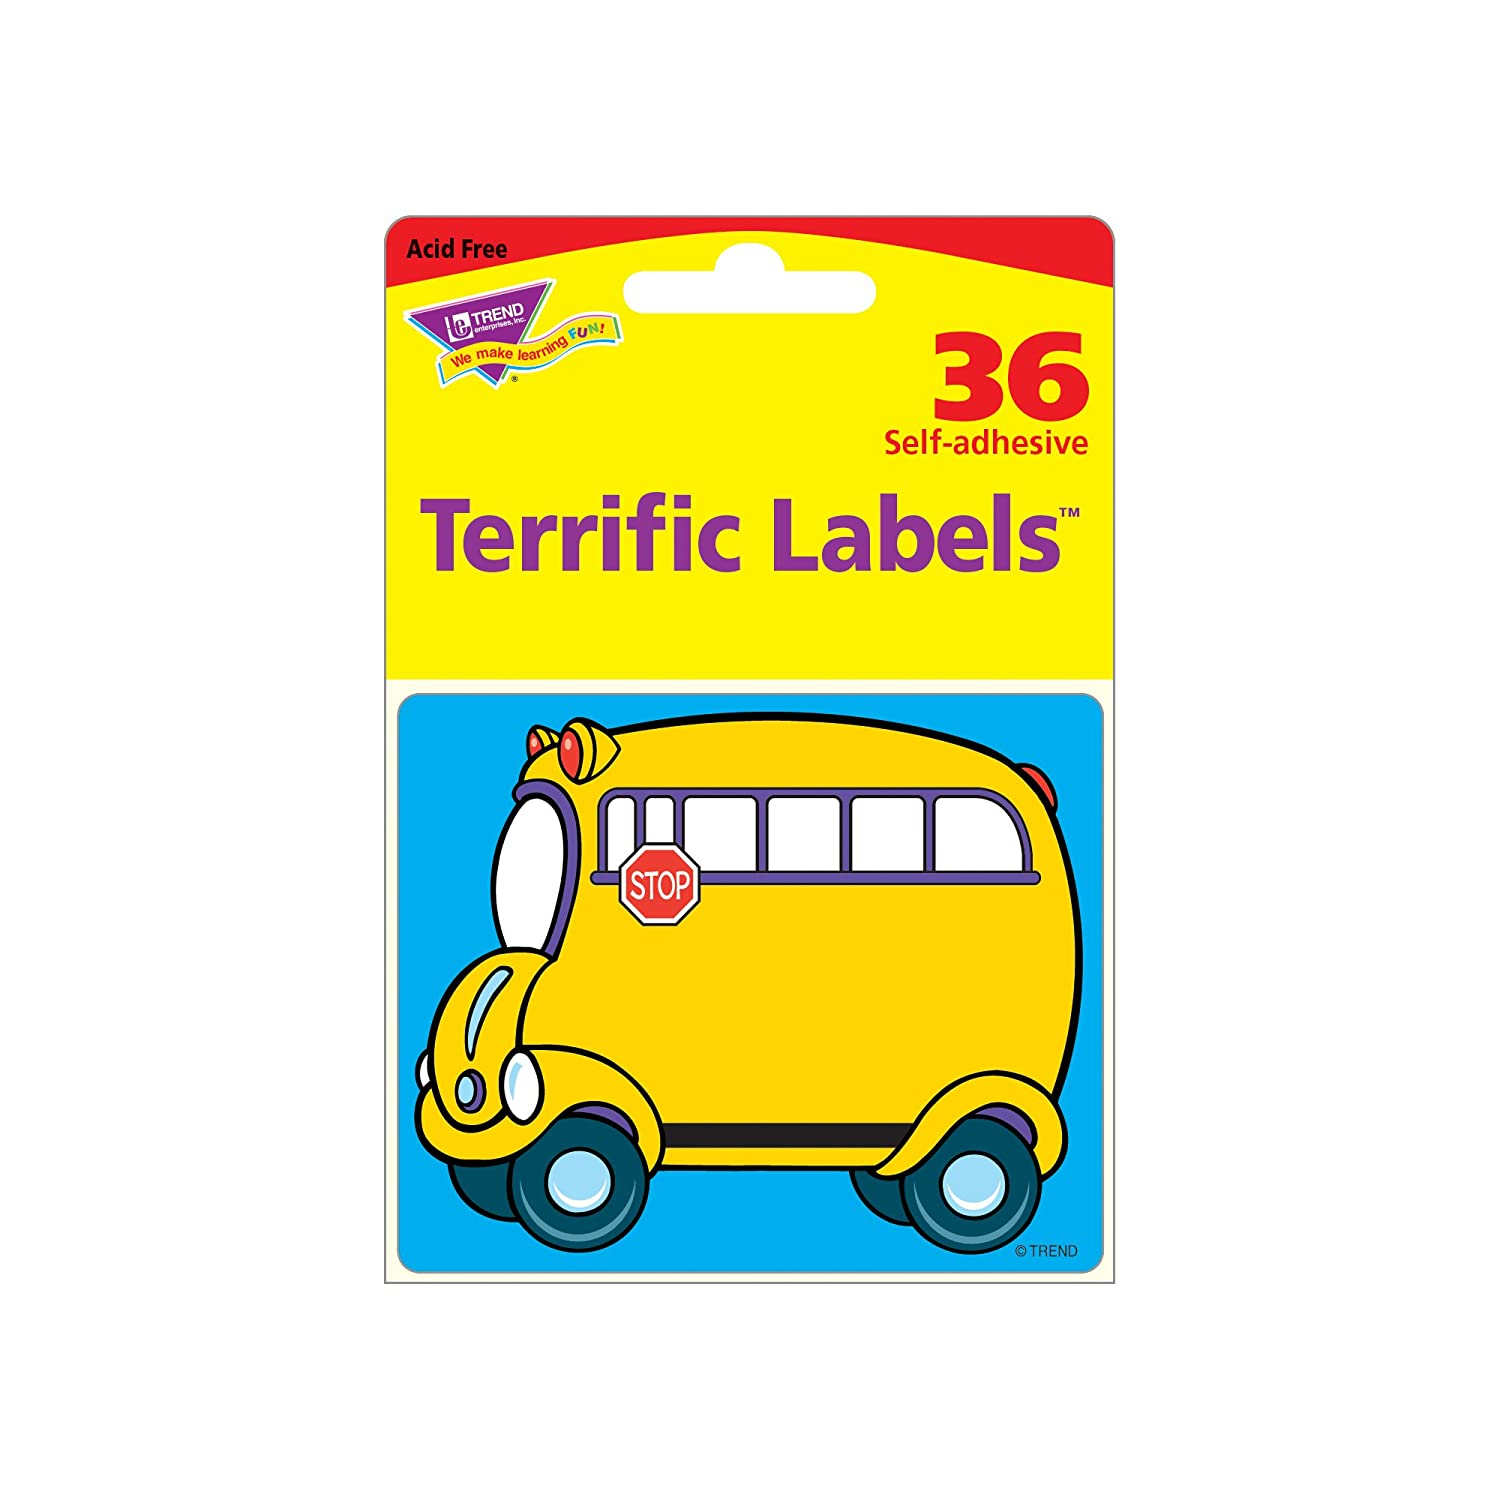 TREND ENTERPRISES INC T-68001 NOM DE L-COLE TAGS bus 36 PACK: Amazon.es: Juguetes y juegos